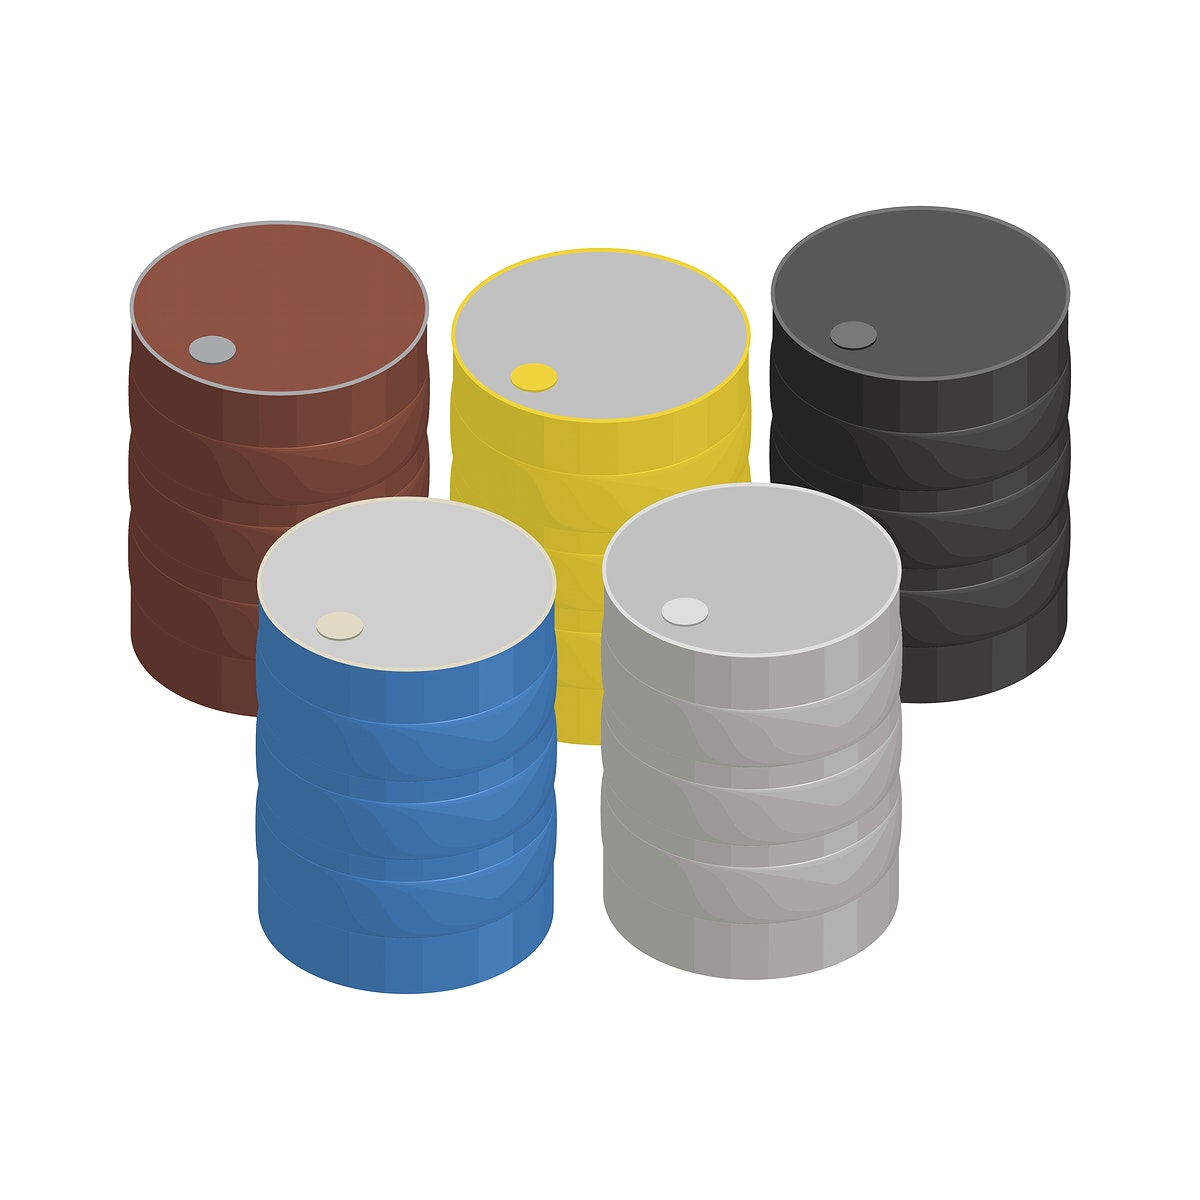 Metal liquid container isolated on background